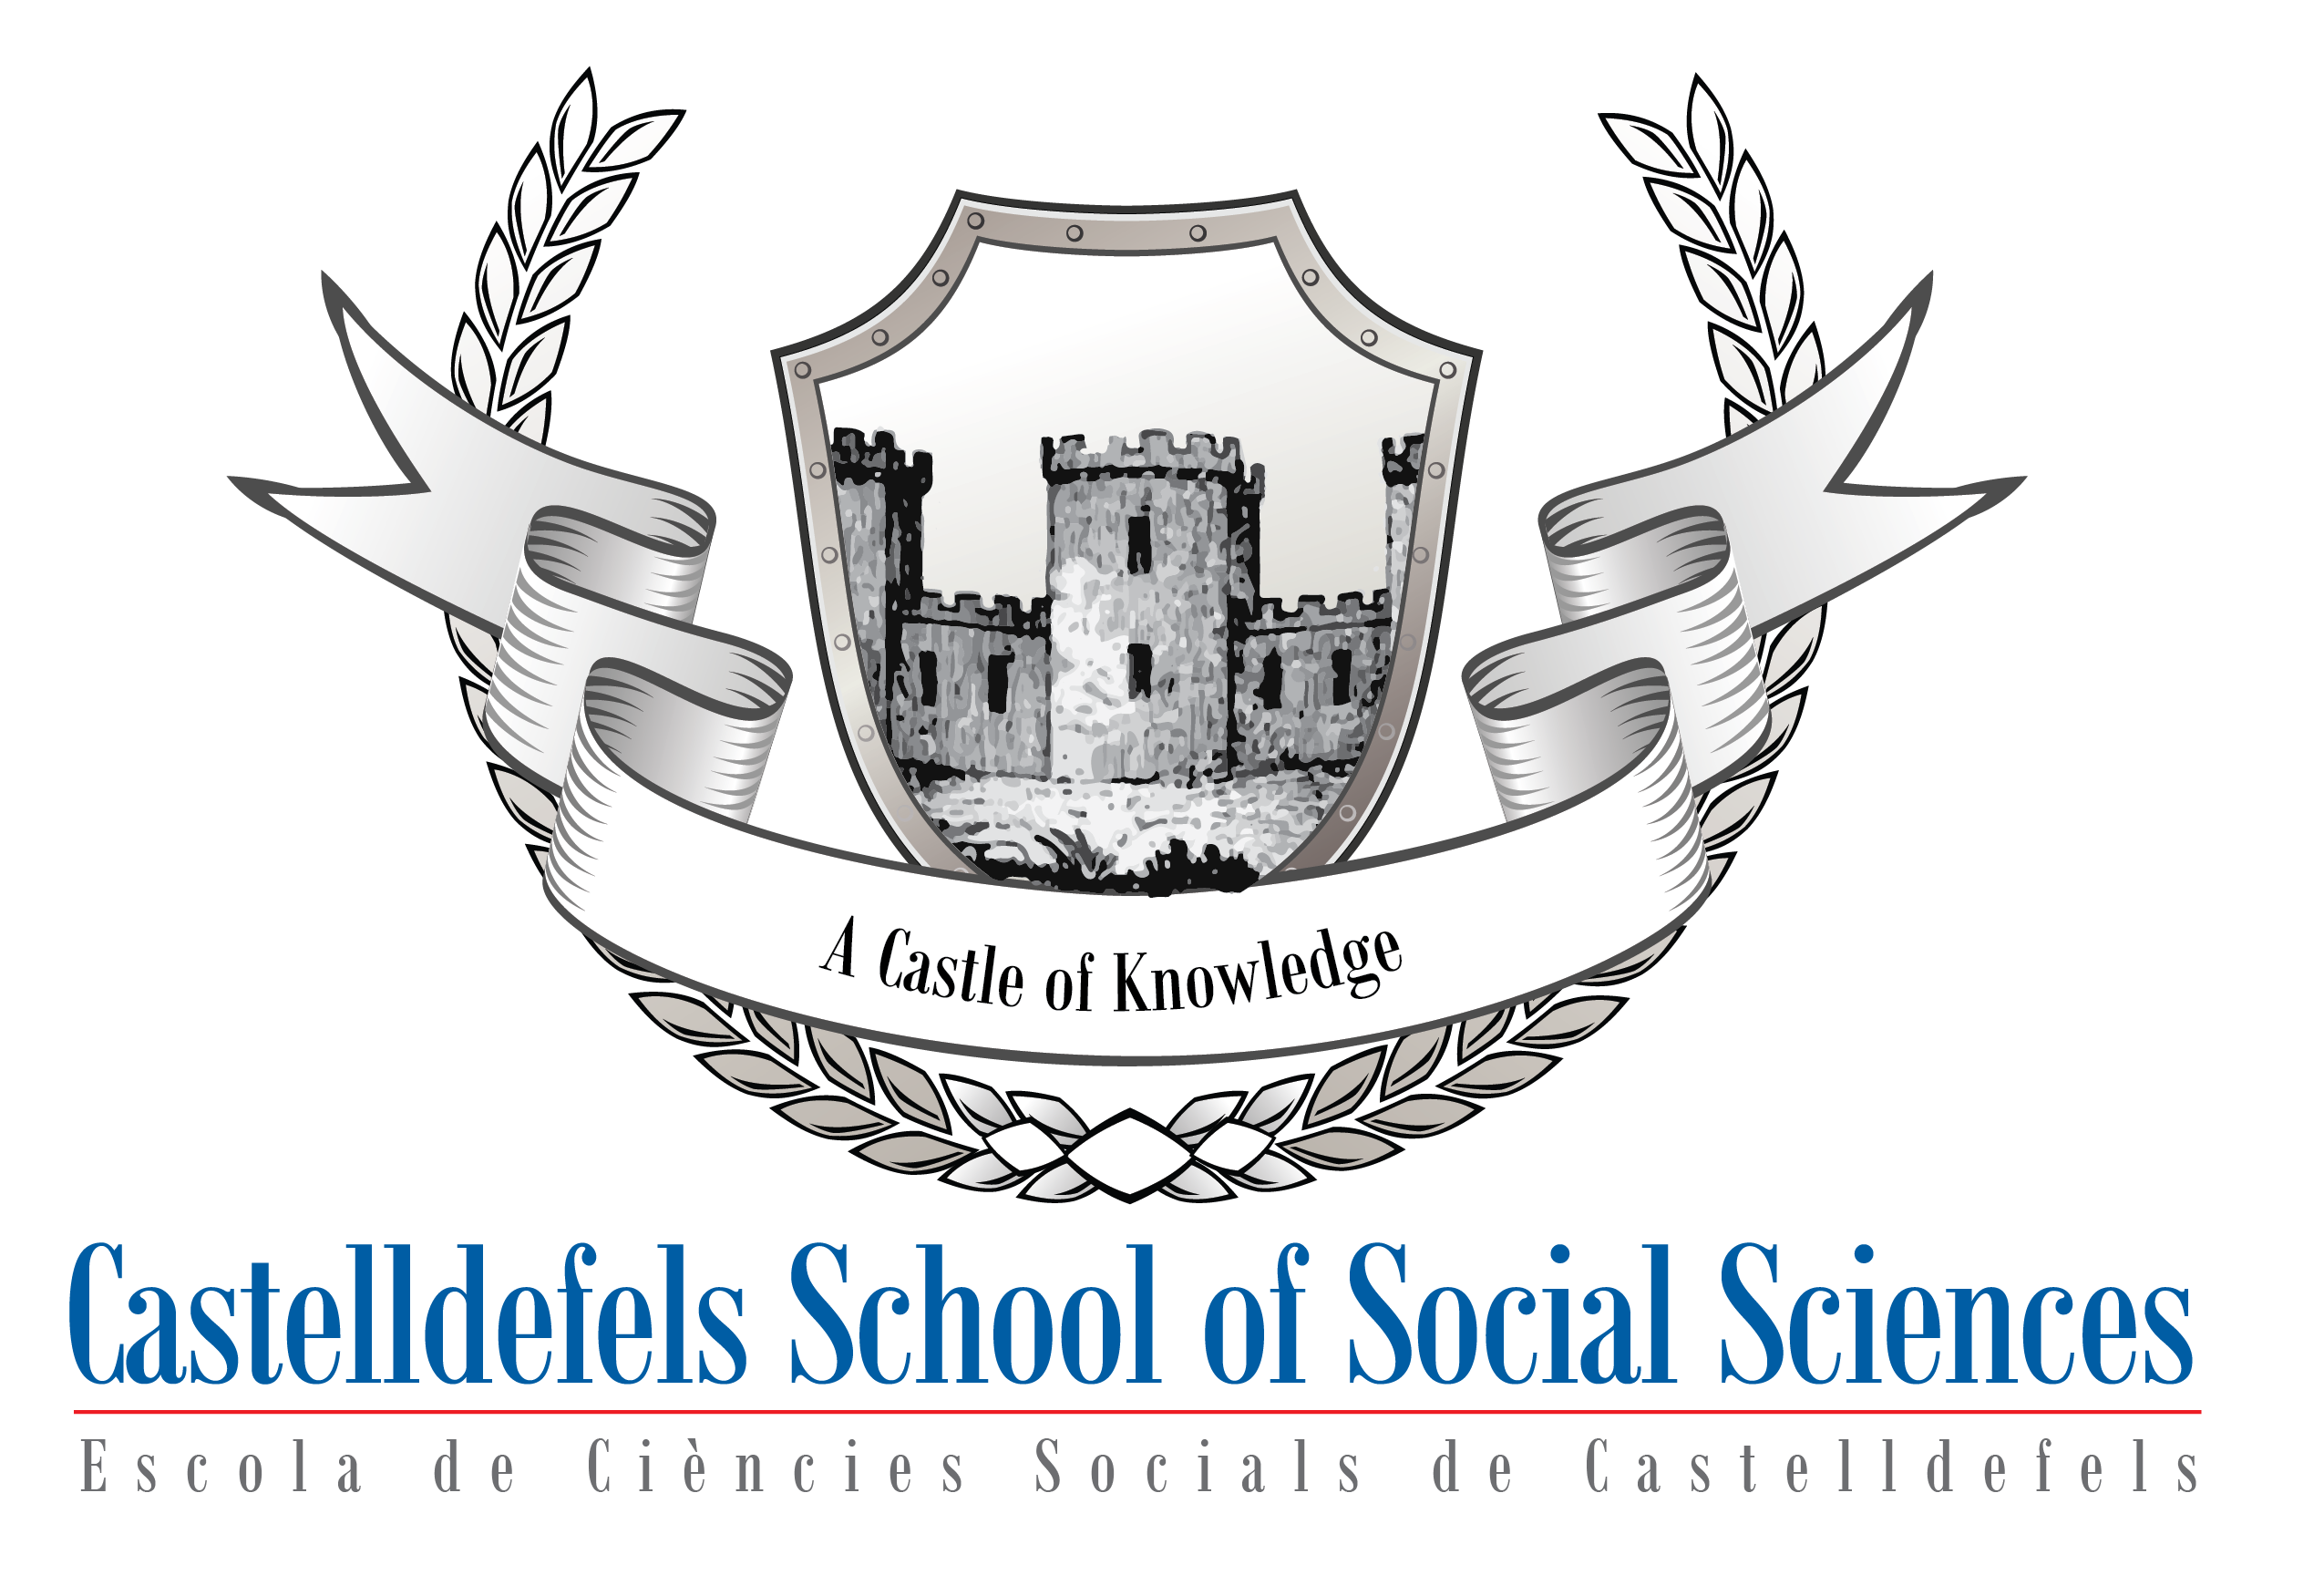 Curriculum clipart general knowledge. Casaeducation castelldefels school of